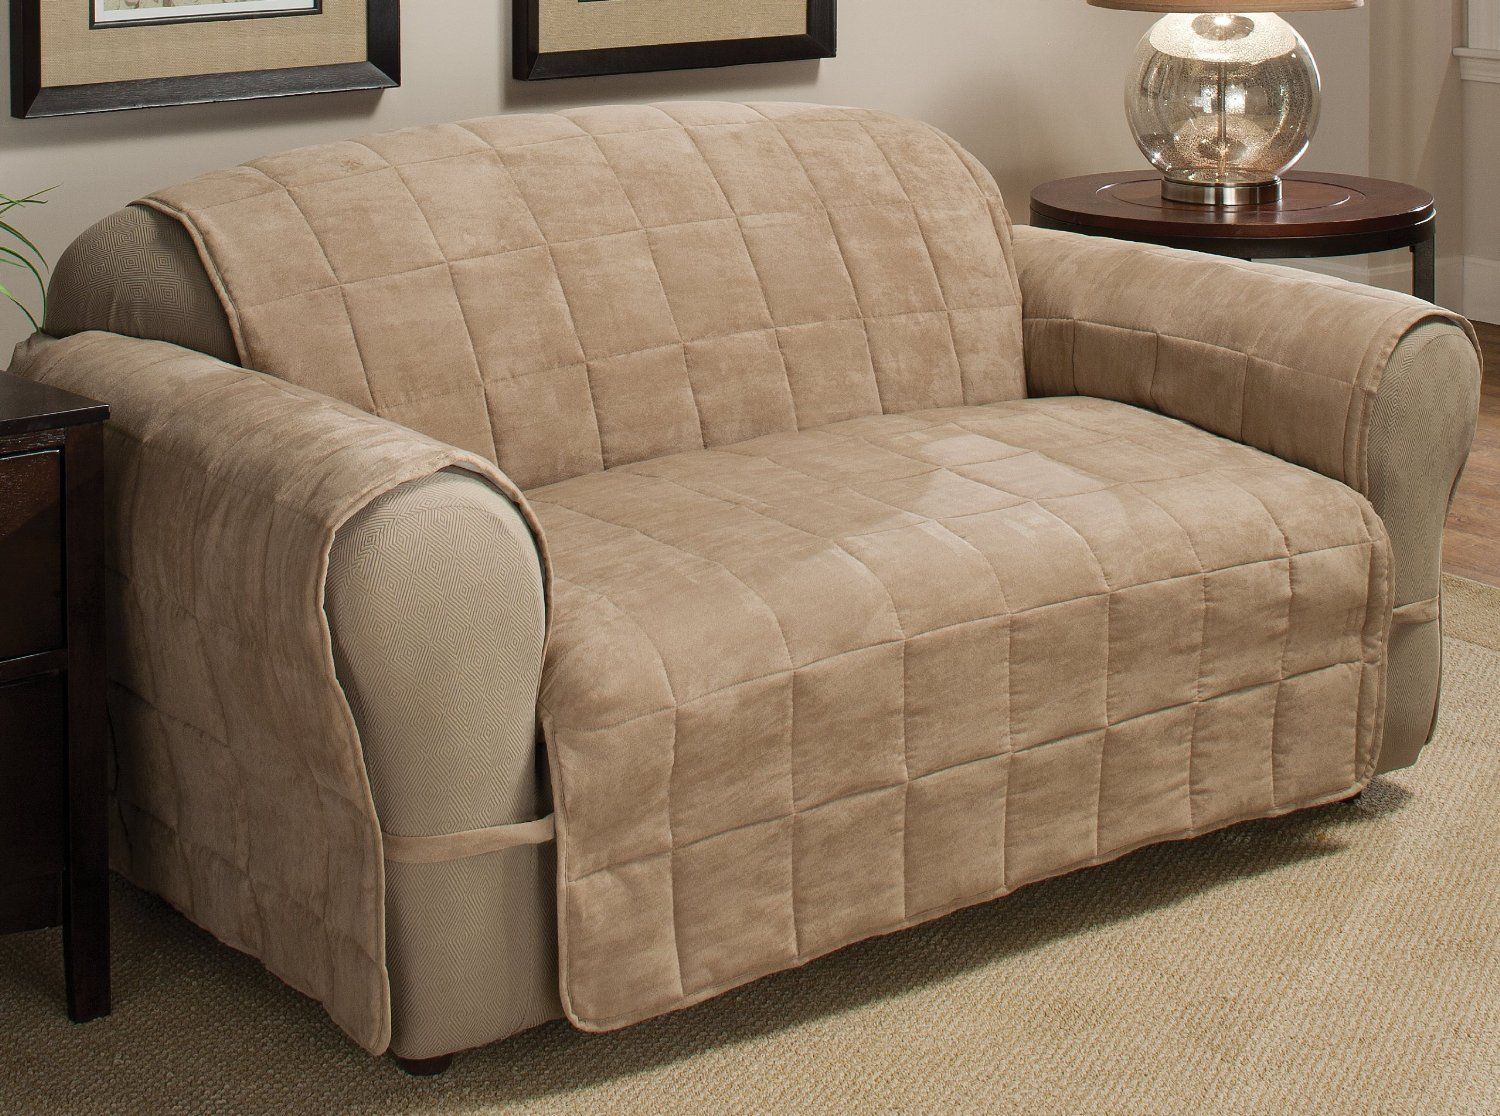 Good Explore Couch Protector, Furniture Covers, And More!